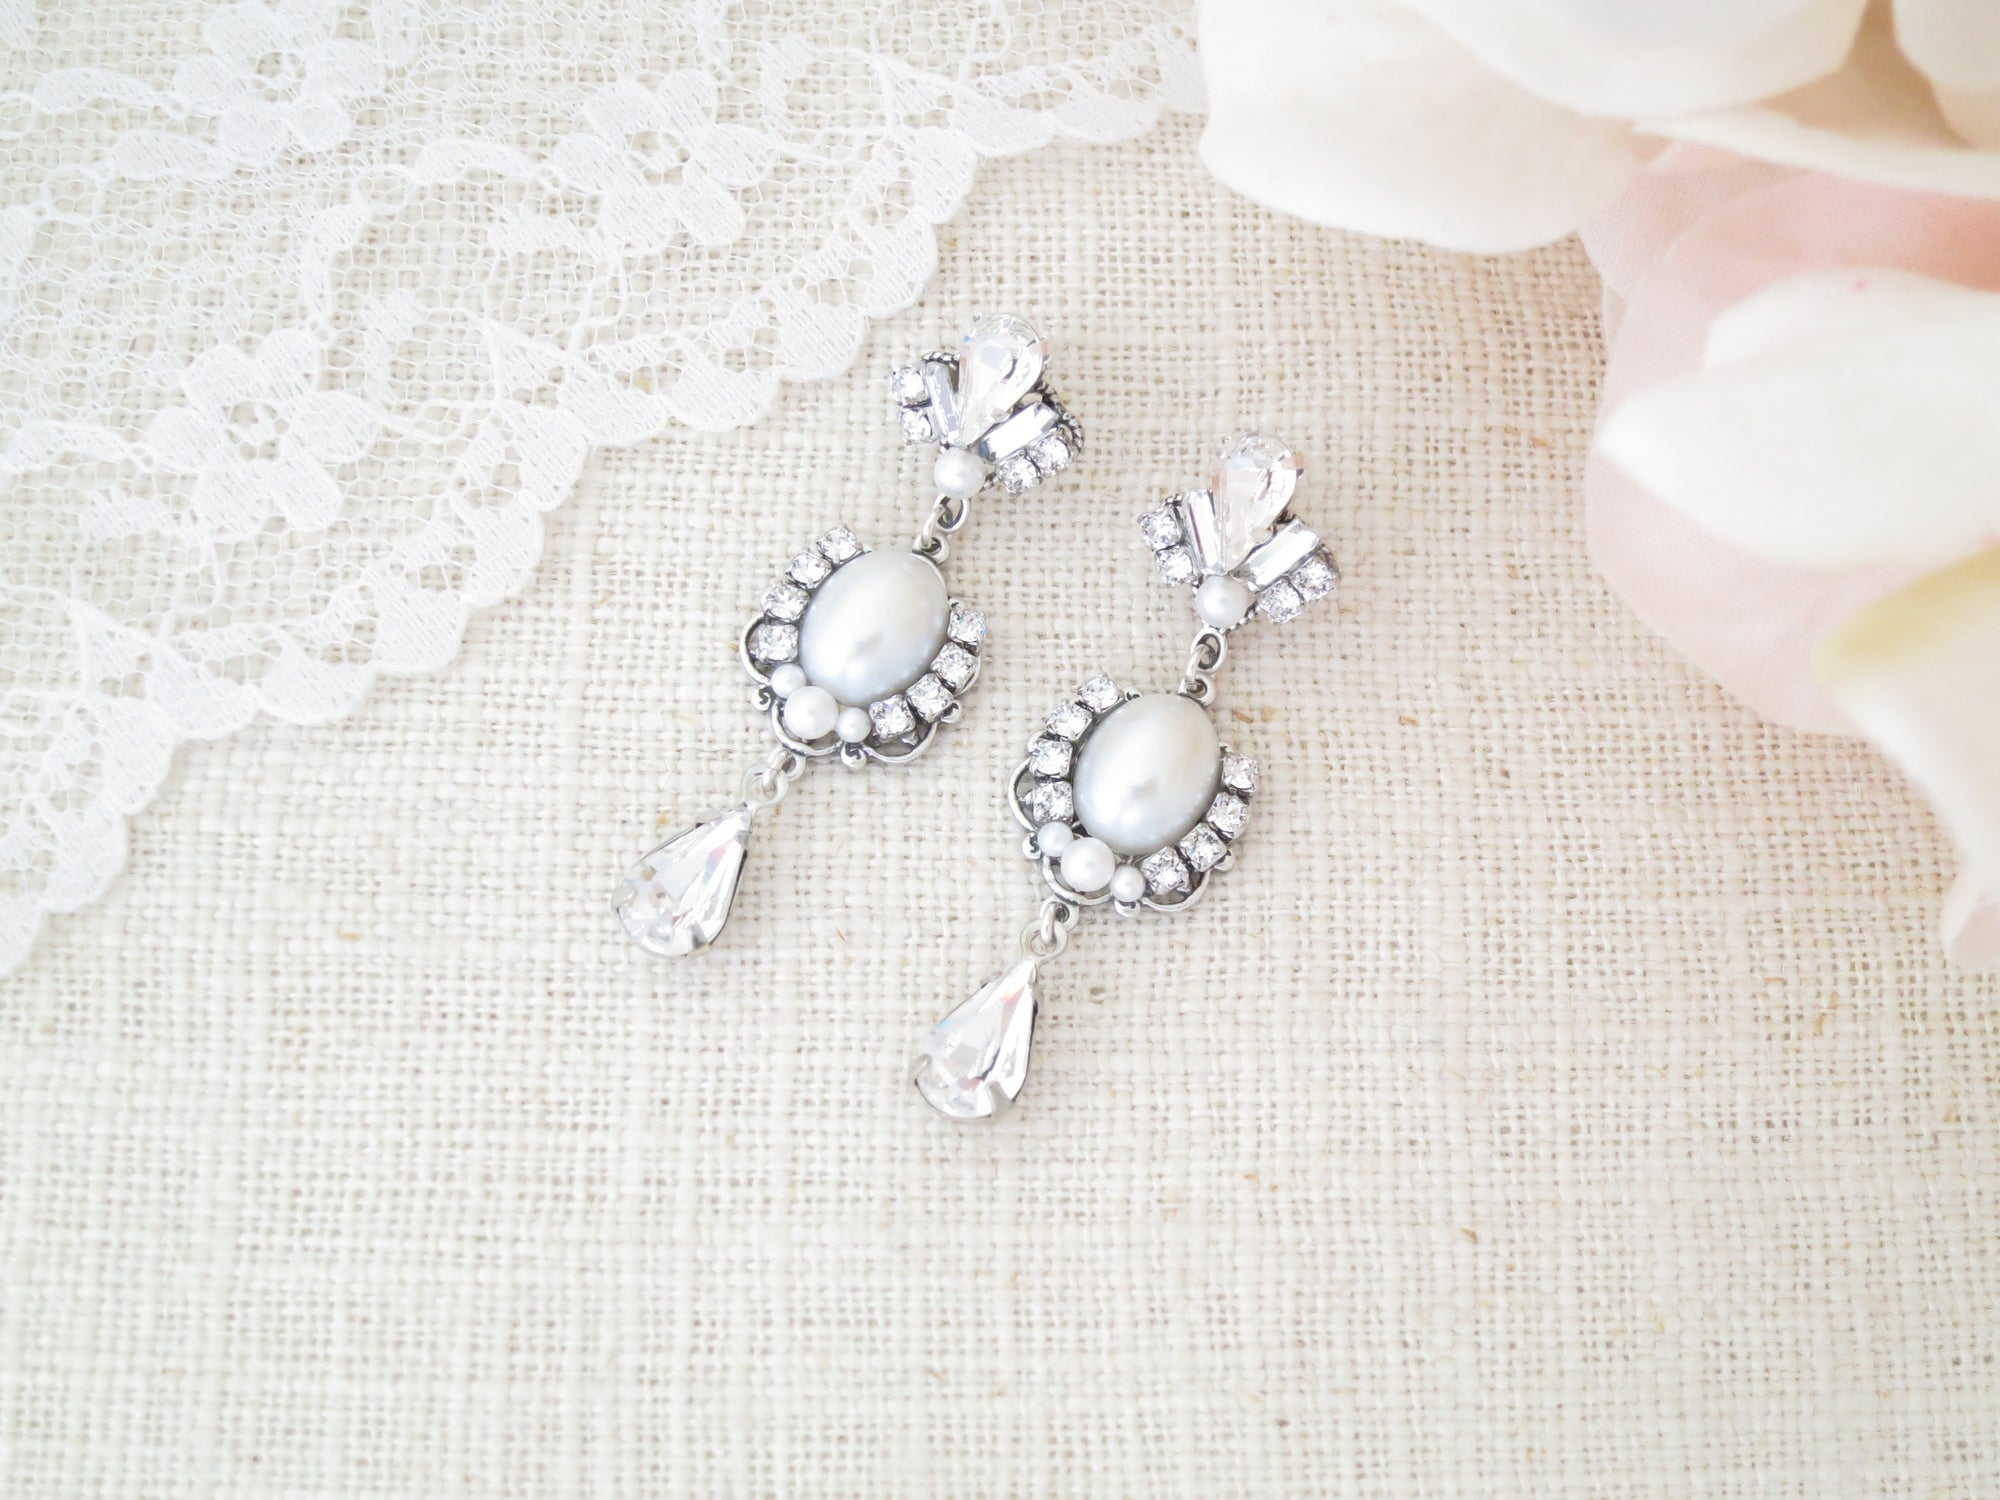 ADELE:  Vintage Pearl Wedding Earrings - BlingBaddaBoom - Minimalist, Vintage, Modern Wedding and Bridal Jewelry